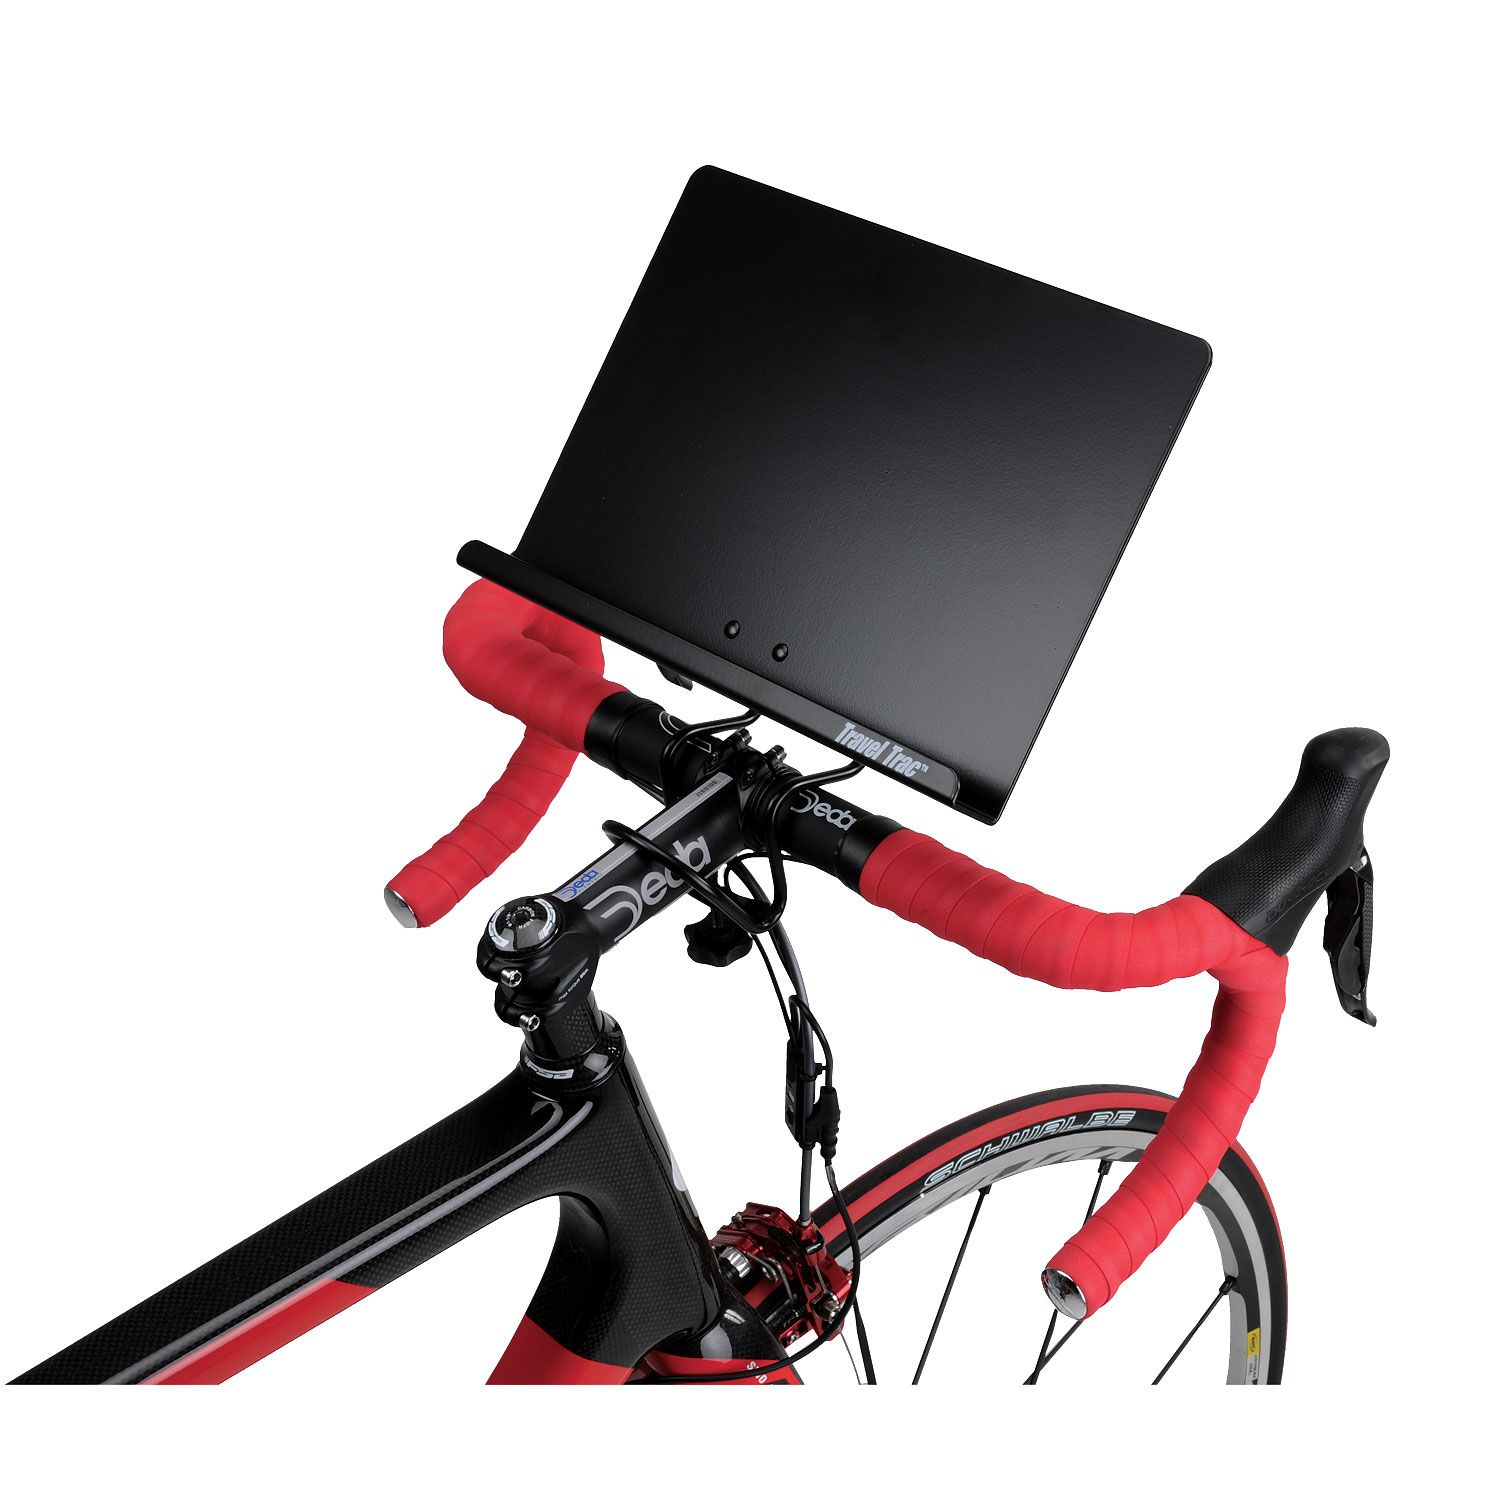 travel trac book caddy one person said they used this mount and